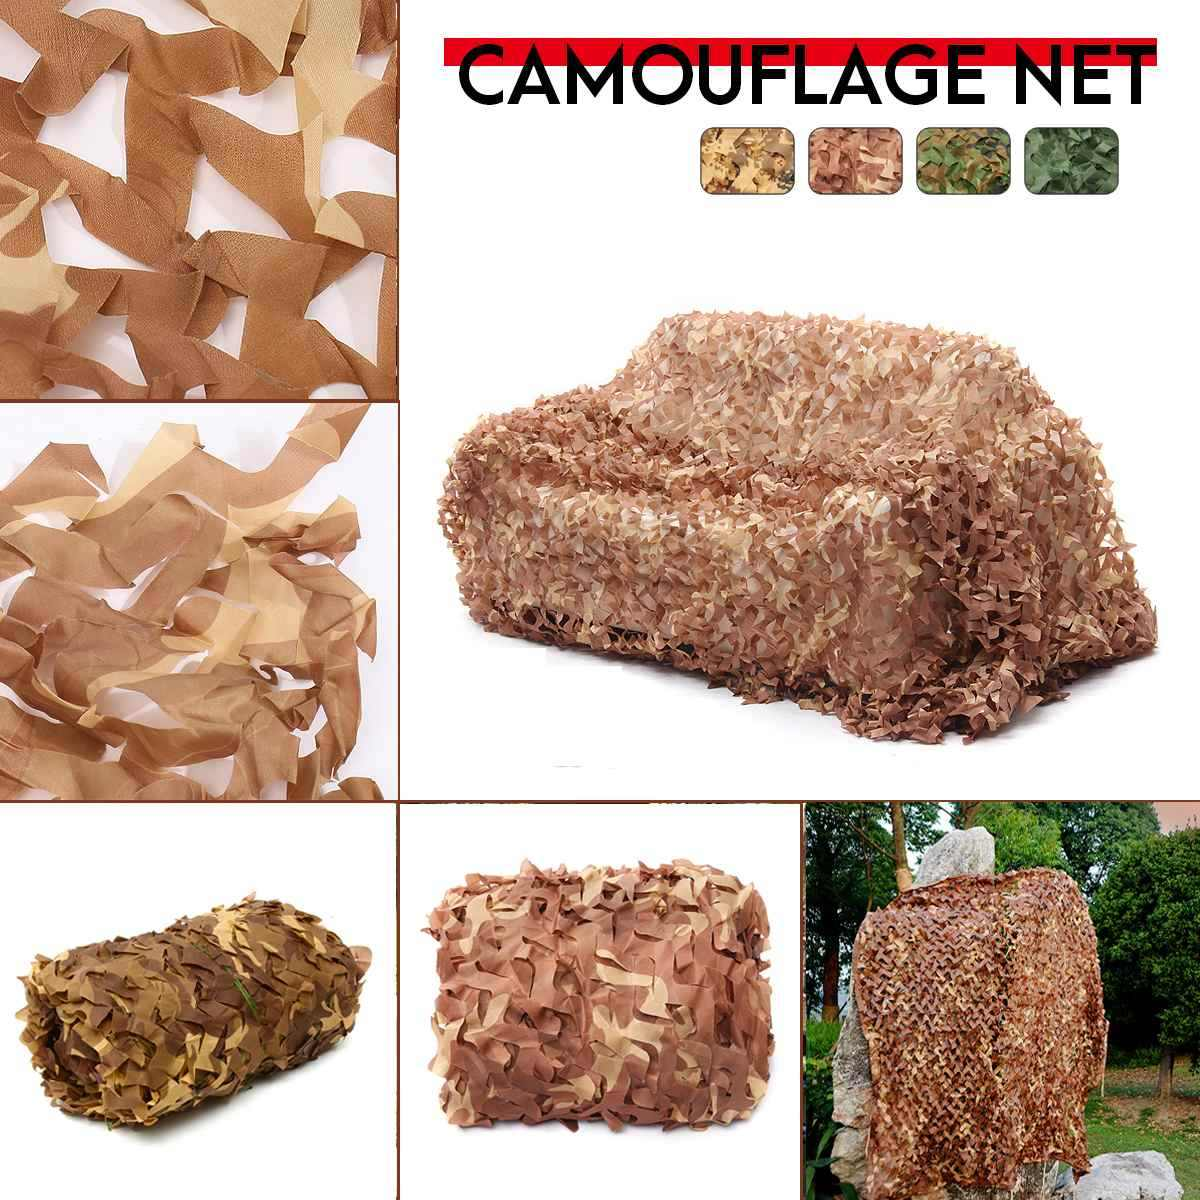 2x2 2x3 2x4 2x5 2x6 2x7 2x8 2.5x5 150D 120g Polyester Oxford Fabric PET Fibre Camouflage Camo Net Netting Hunting Sun Shade Car